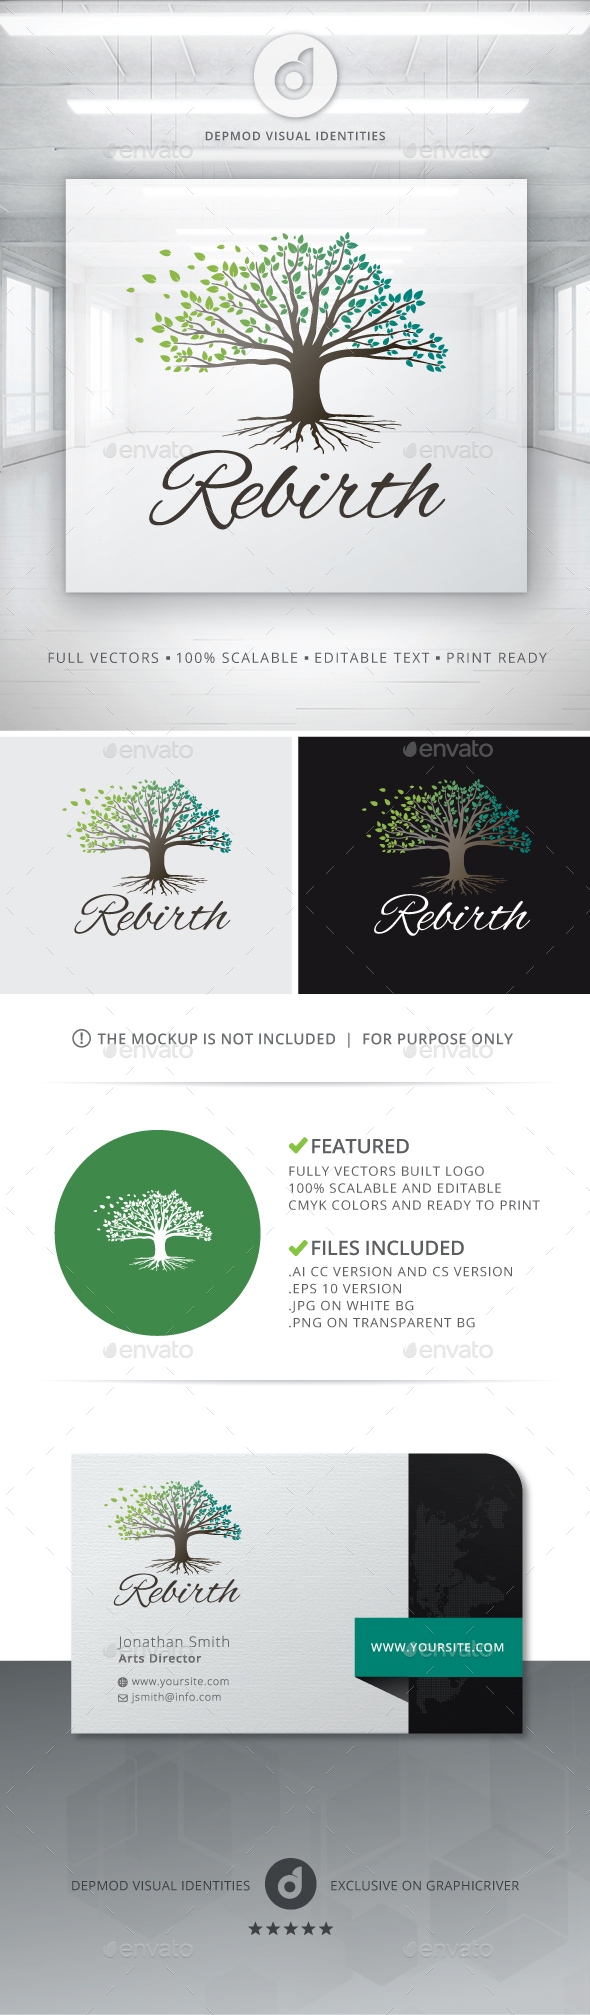 Rebirth Logo - Nature Logo Templates